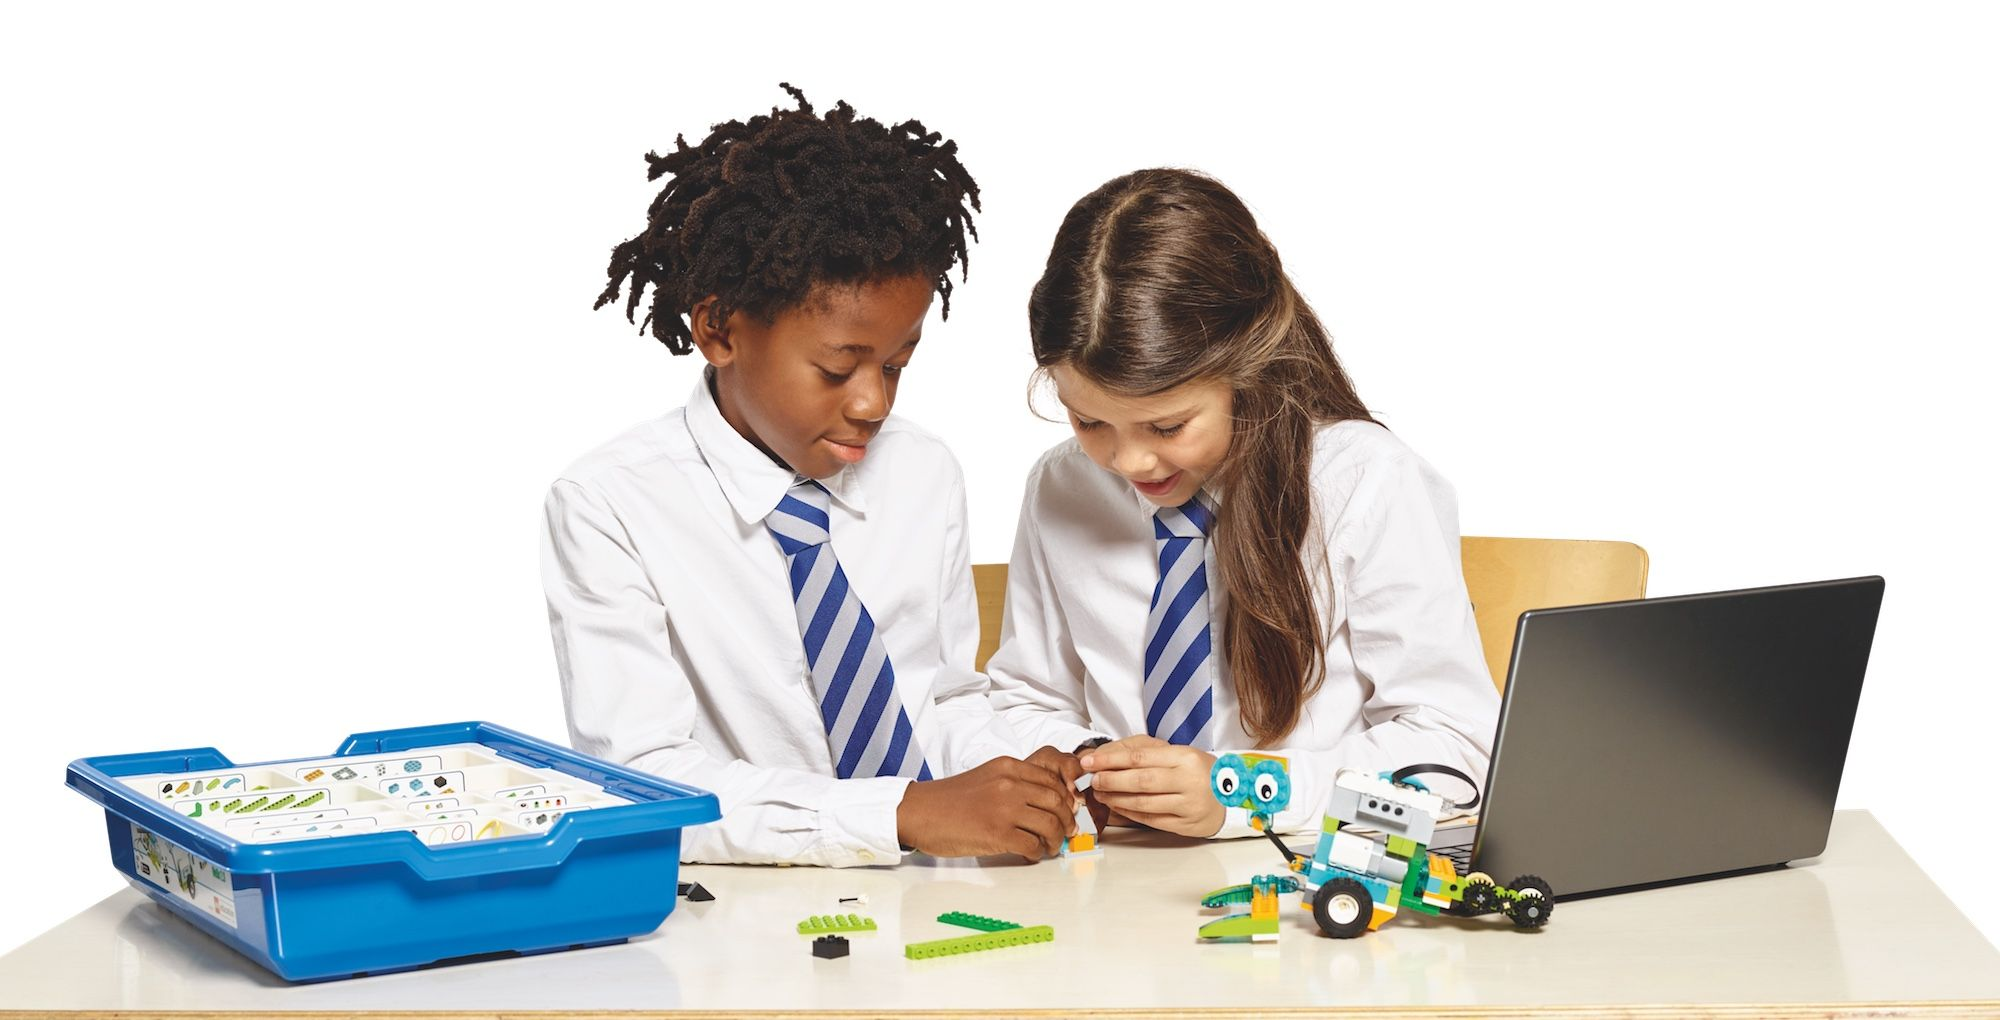 LEGO® WeDo 2.0 for education